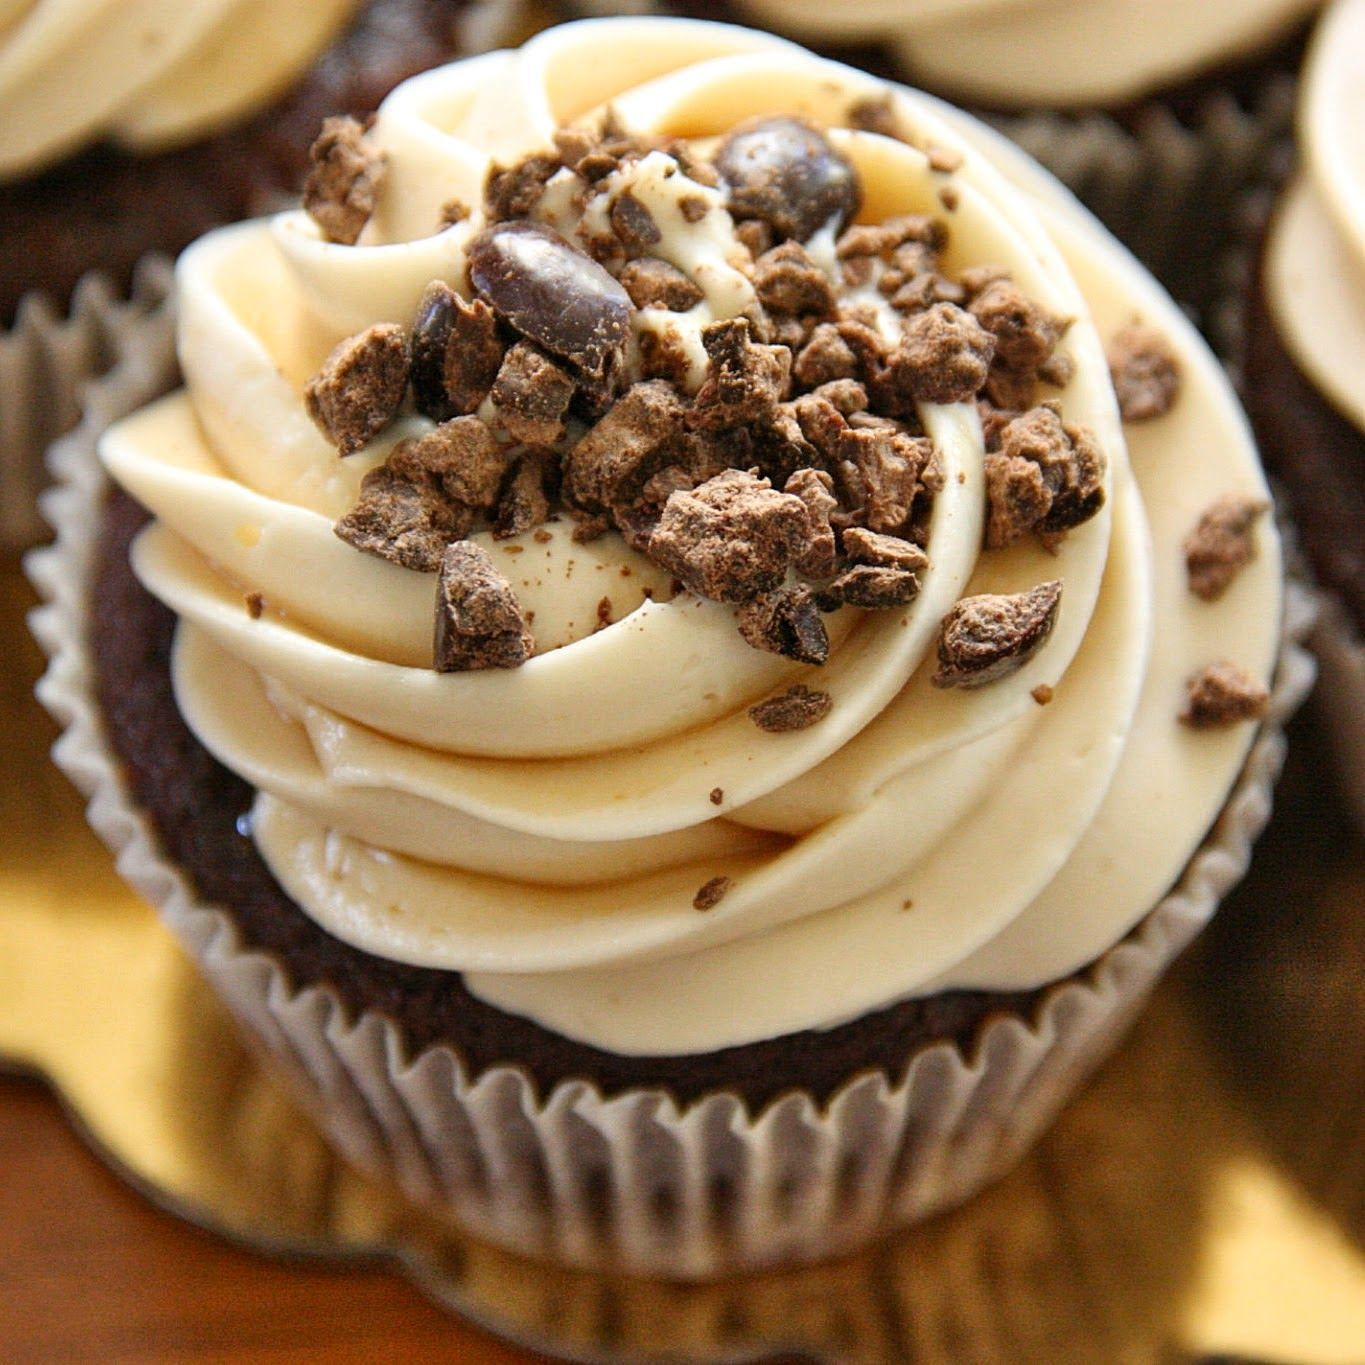 Art of Dessert: Chocolate Espresso Cupcakes with Kahlua Cream Cheese Frosting